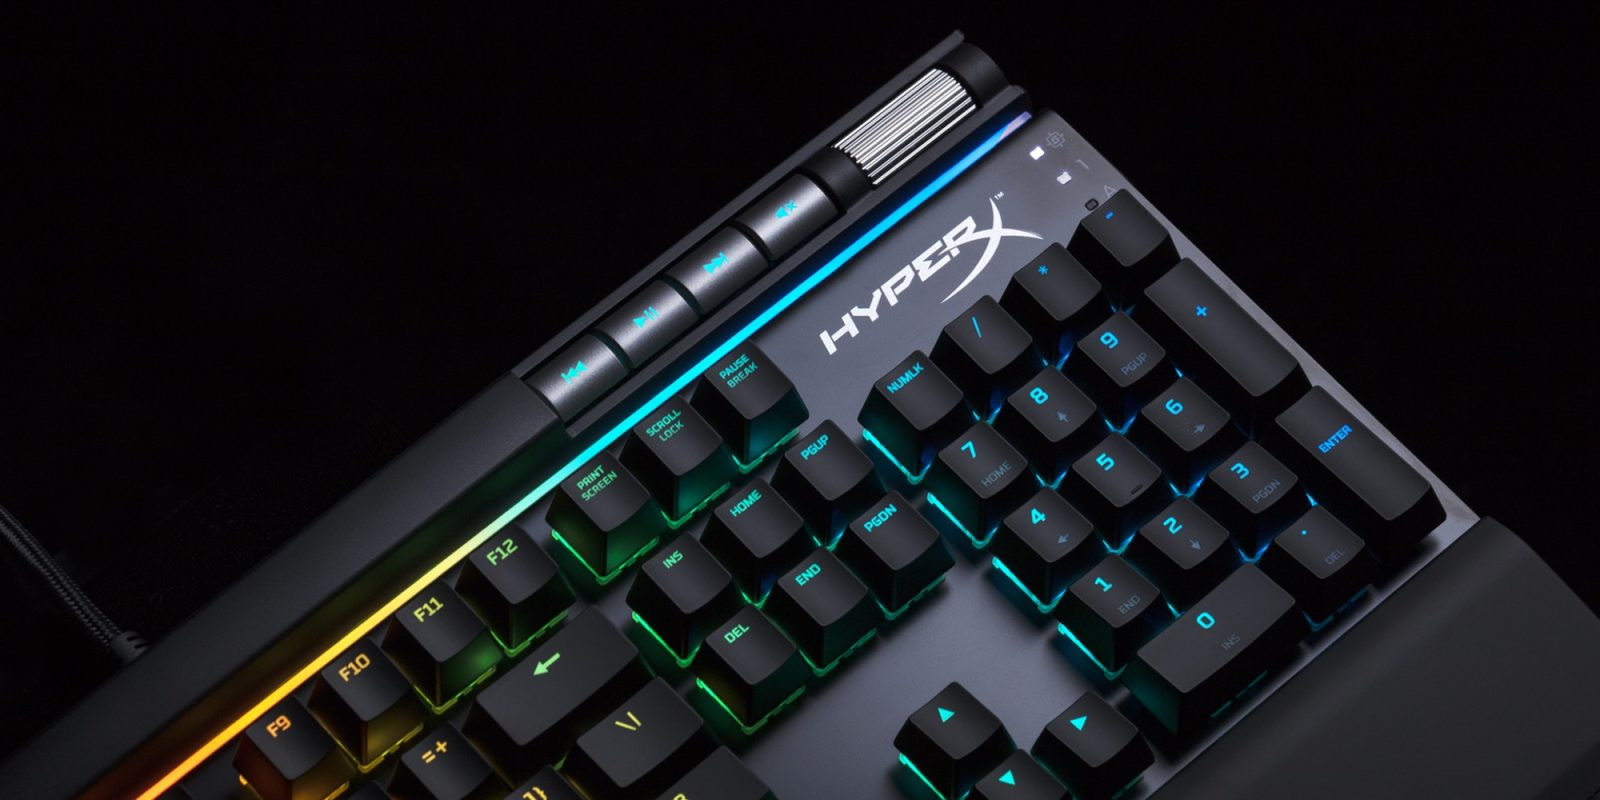 HyperX's feature-packed Alloy Elite Gaming Keyboard drops to $100 ($40 off)